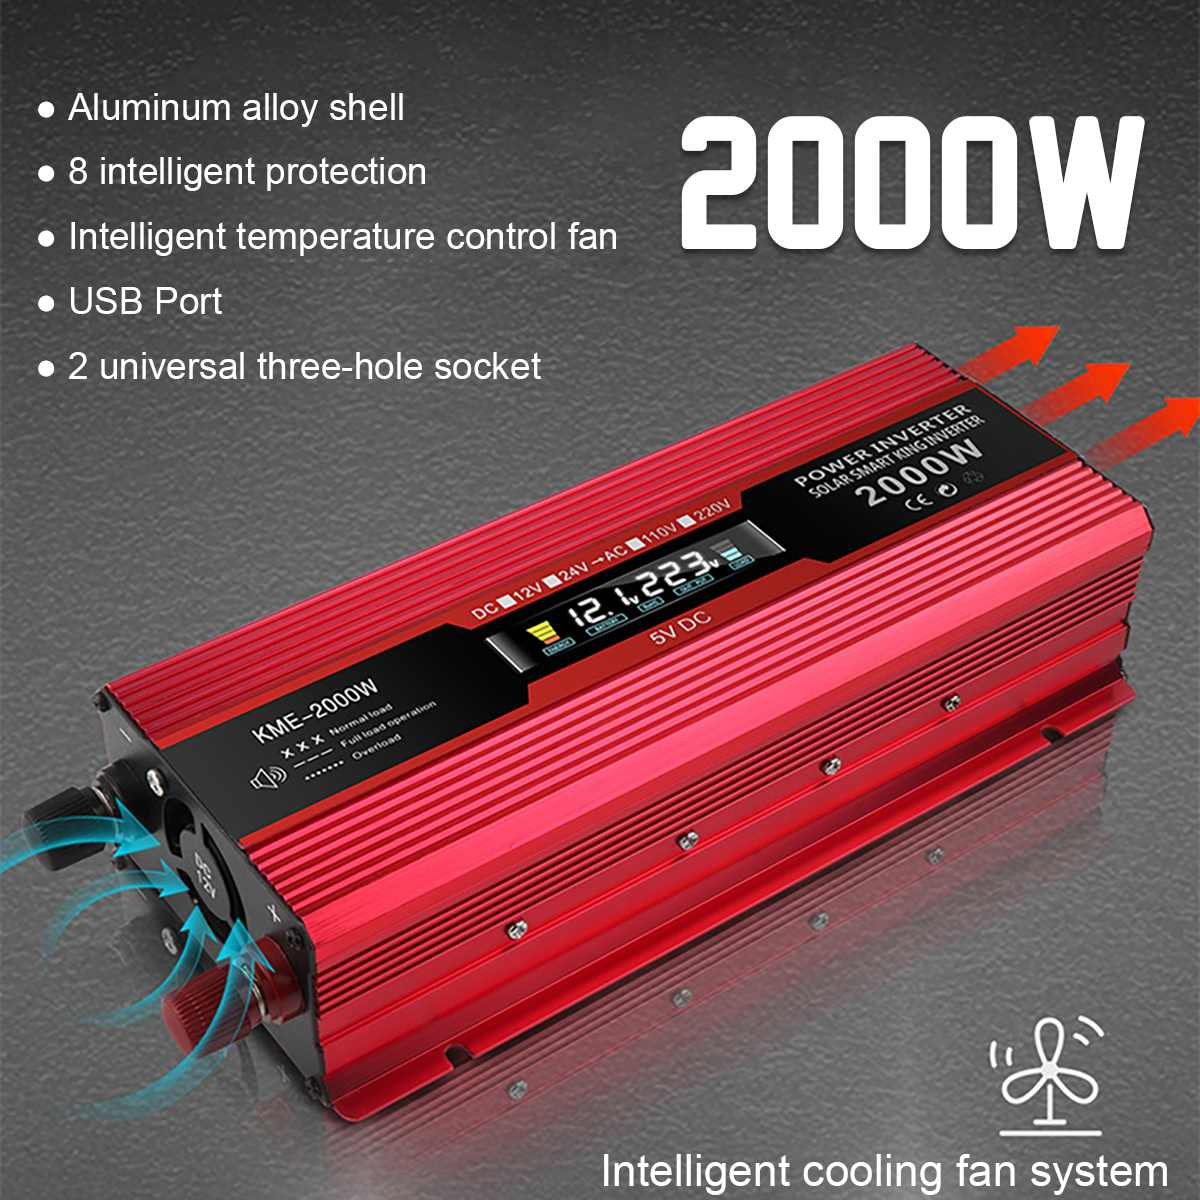 DC 24V to AC 220V Car 1000W Power Inverter Dual USB Converters Replacement